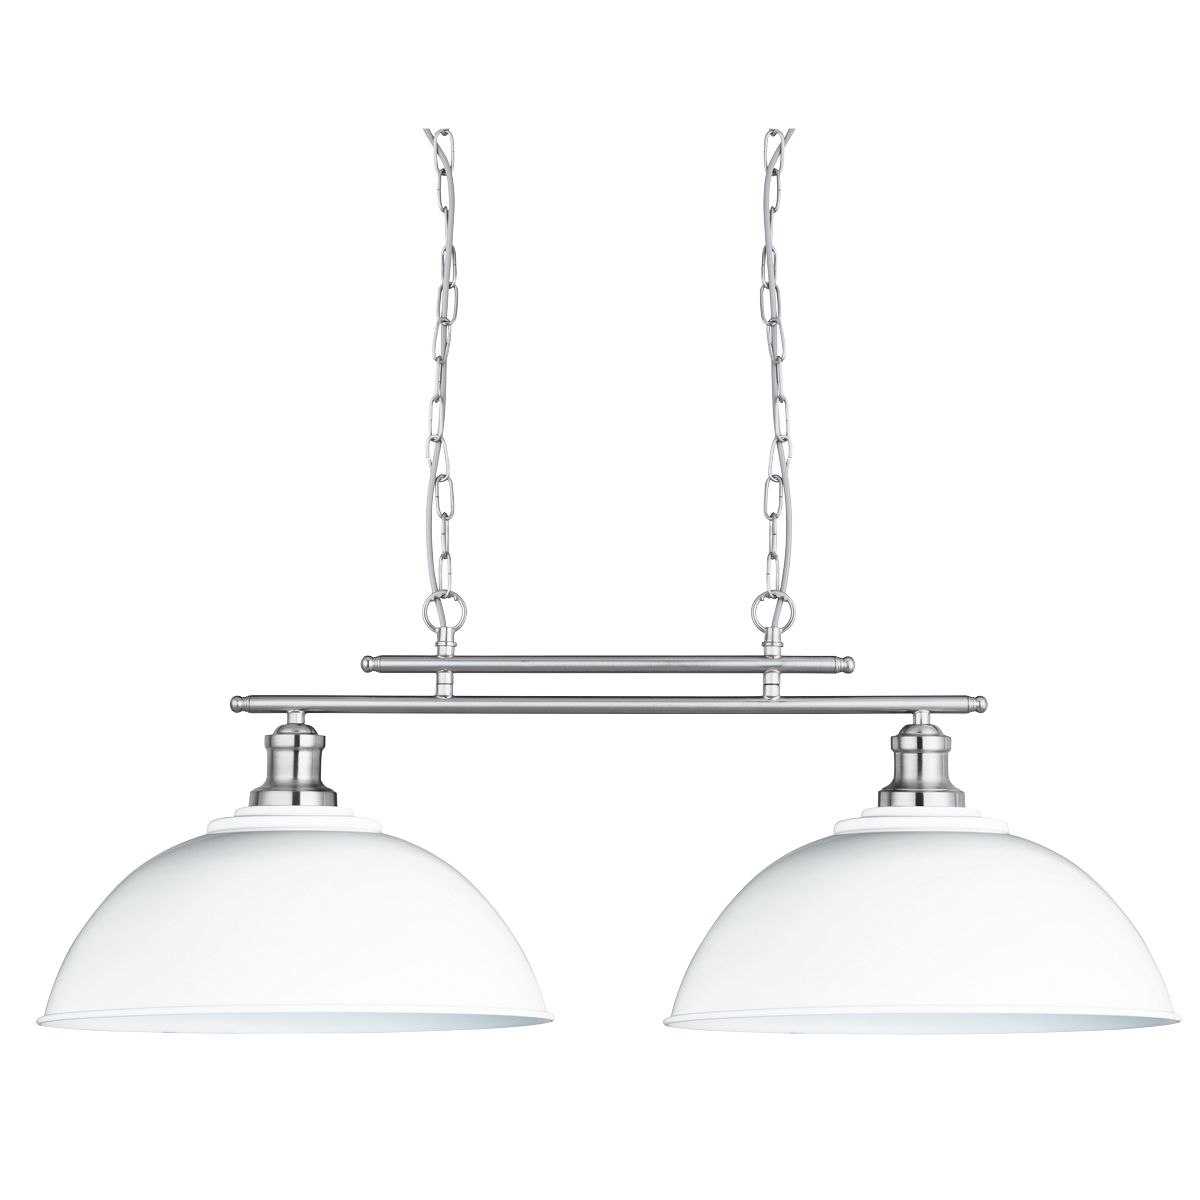 Fusion Satin Silver 2 Light Ceiling Bar Light With White Shades